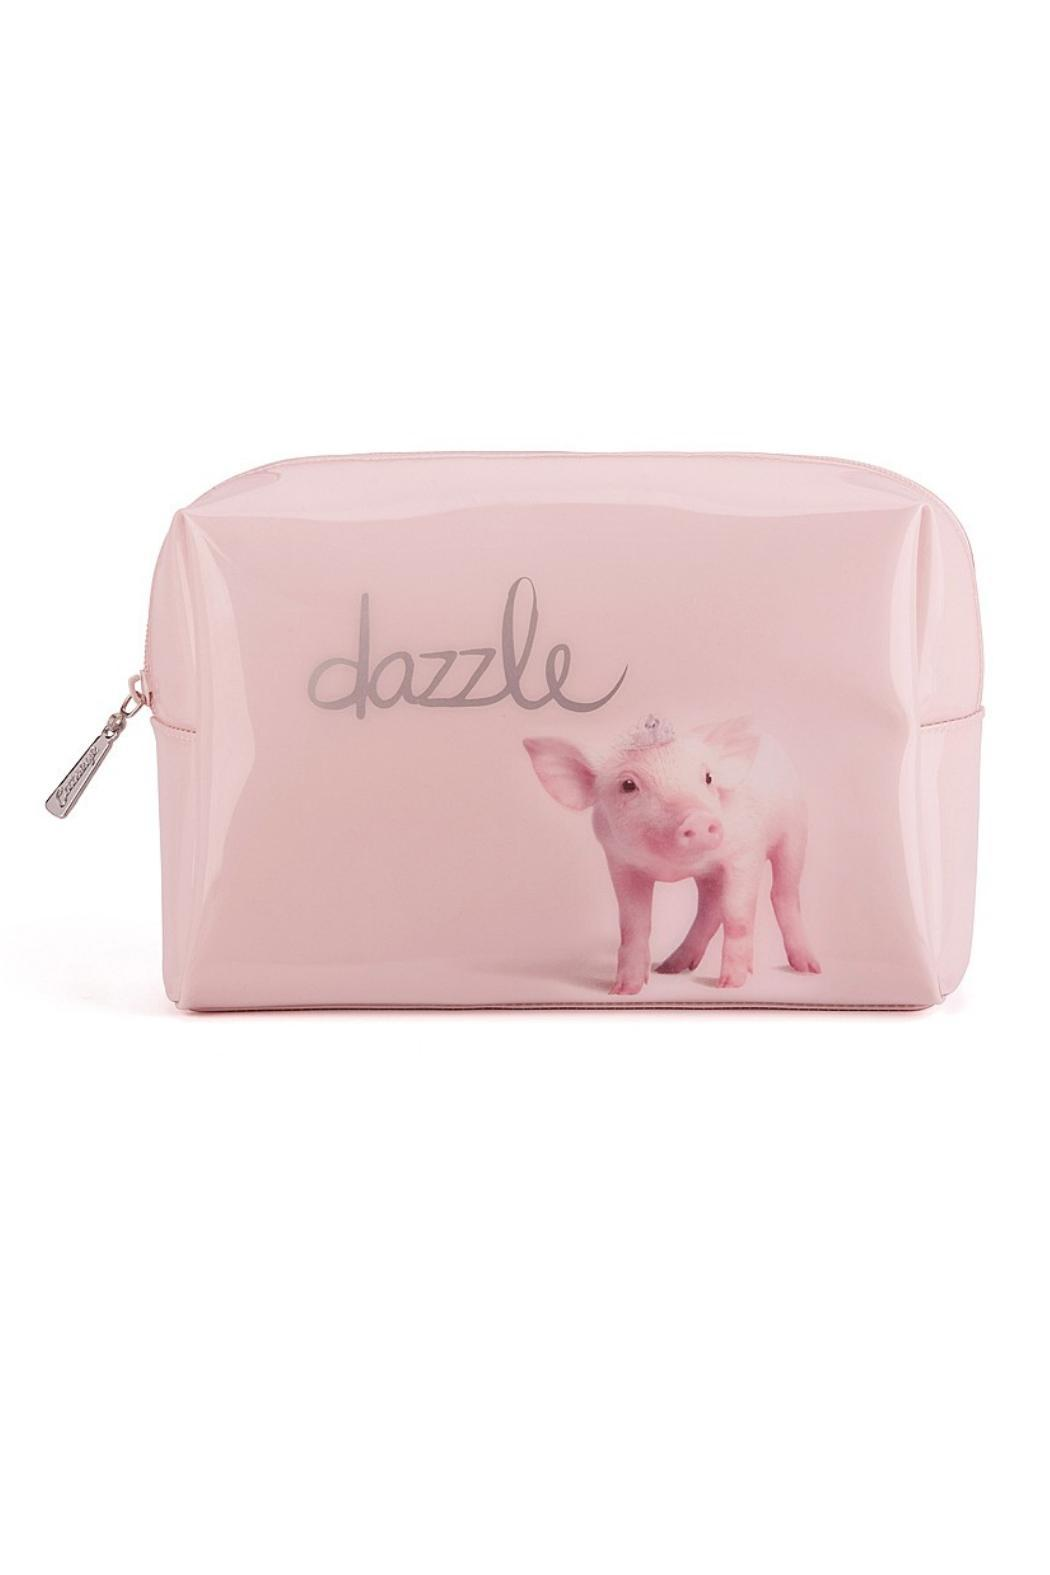 Catseye London Dazzle Beauty Bag From New York By Let S Bag It Shoptiques